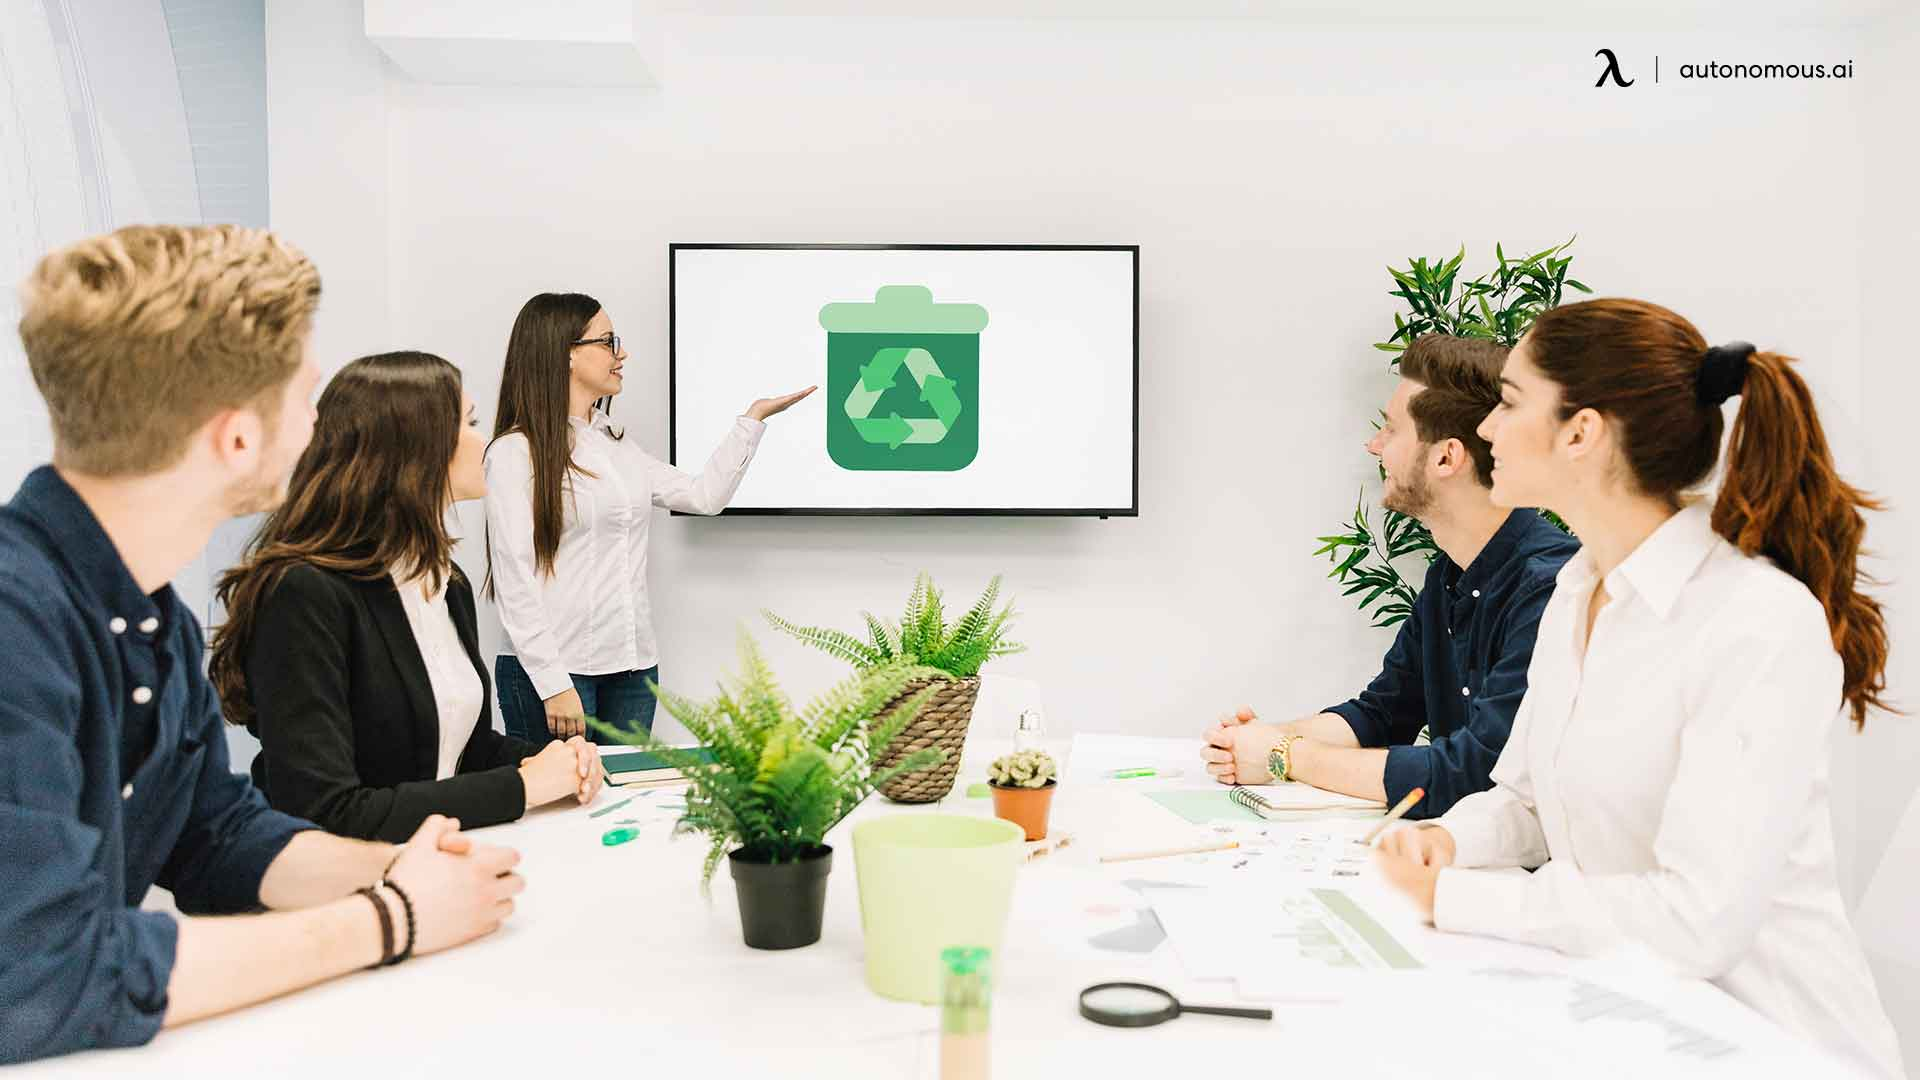 Reduce, reuse, recycle, refuse is the best green office tip